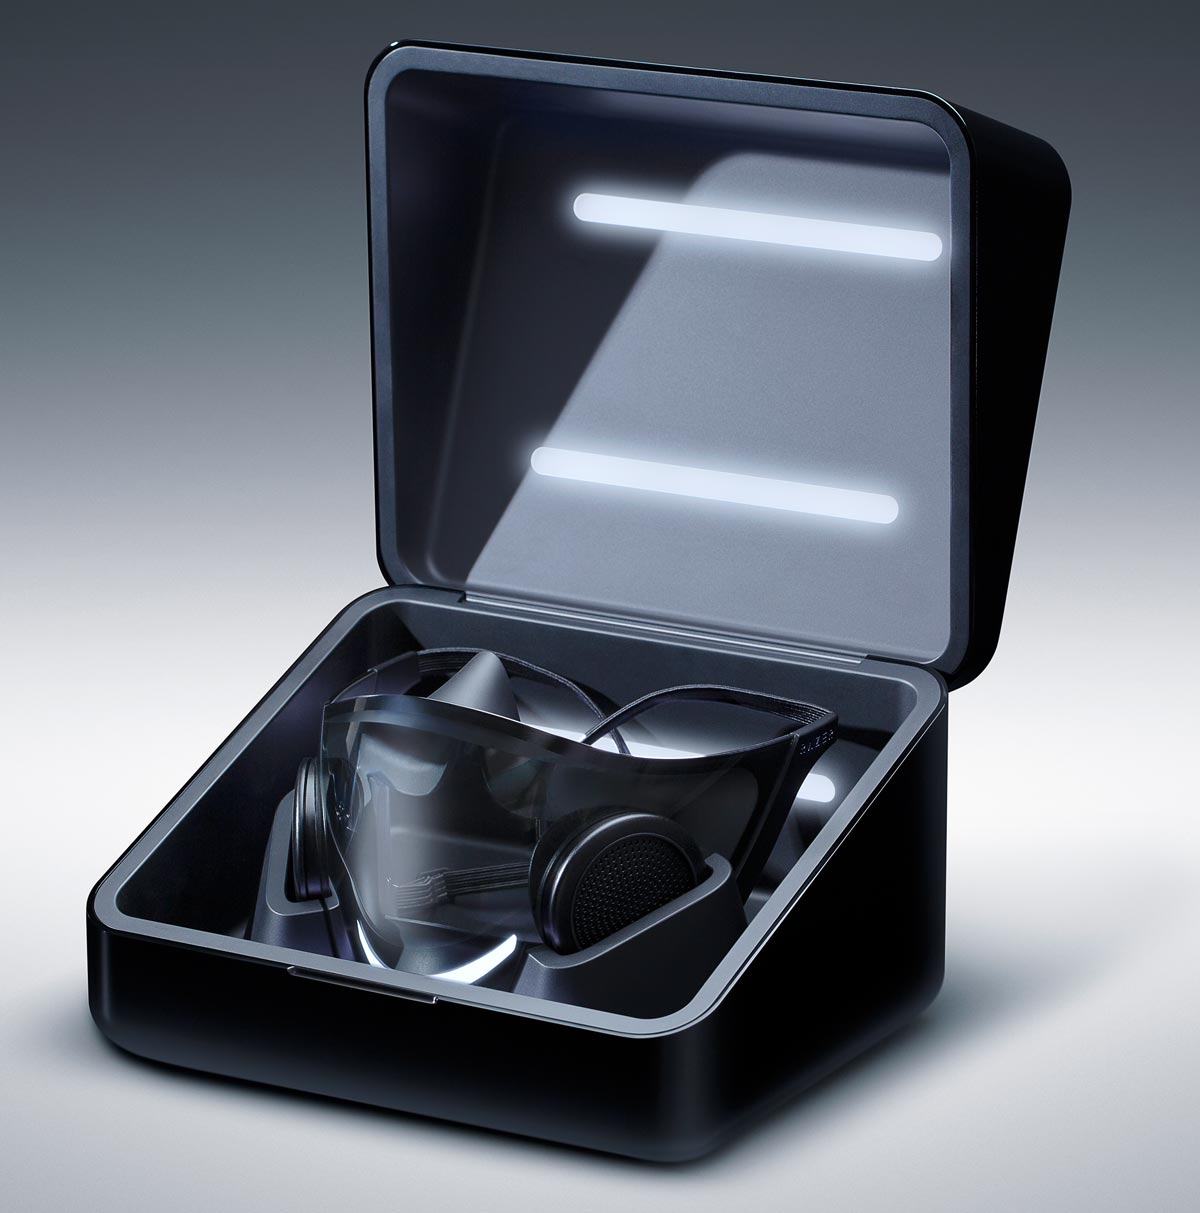 The Razer Project Hazel face mask in its charging/sanitizing case